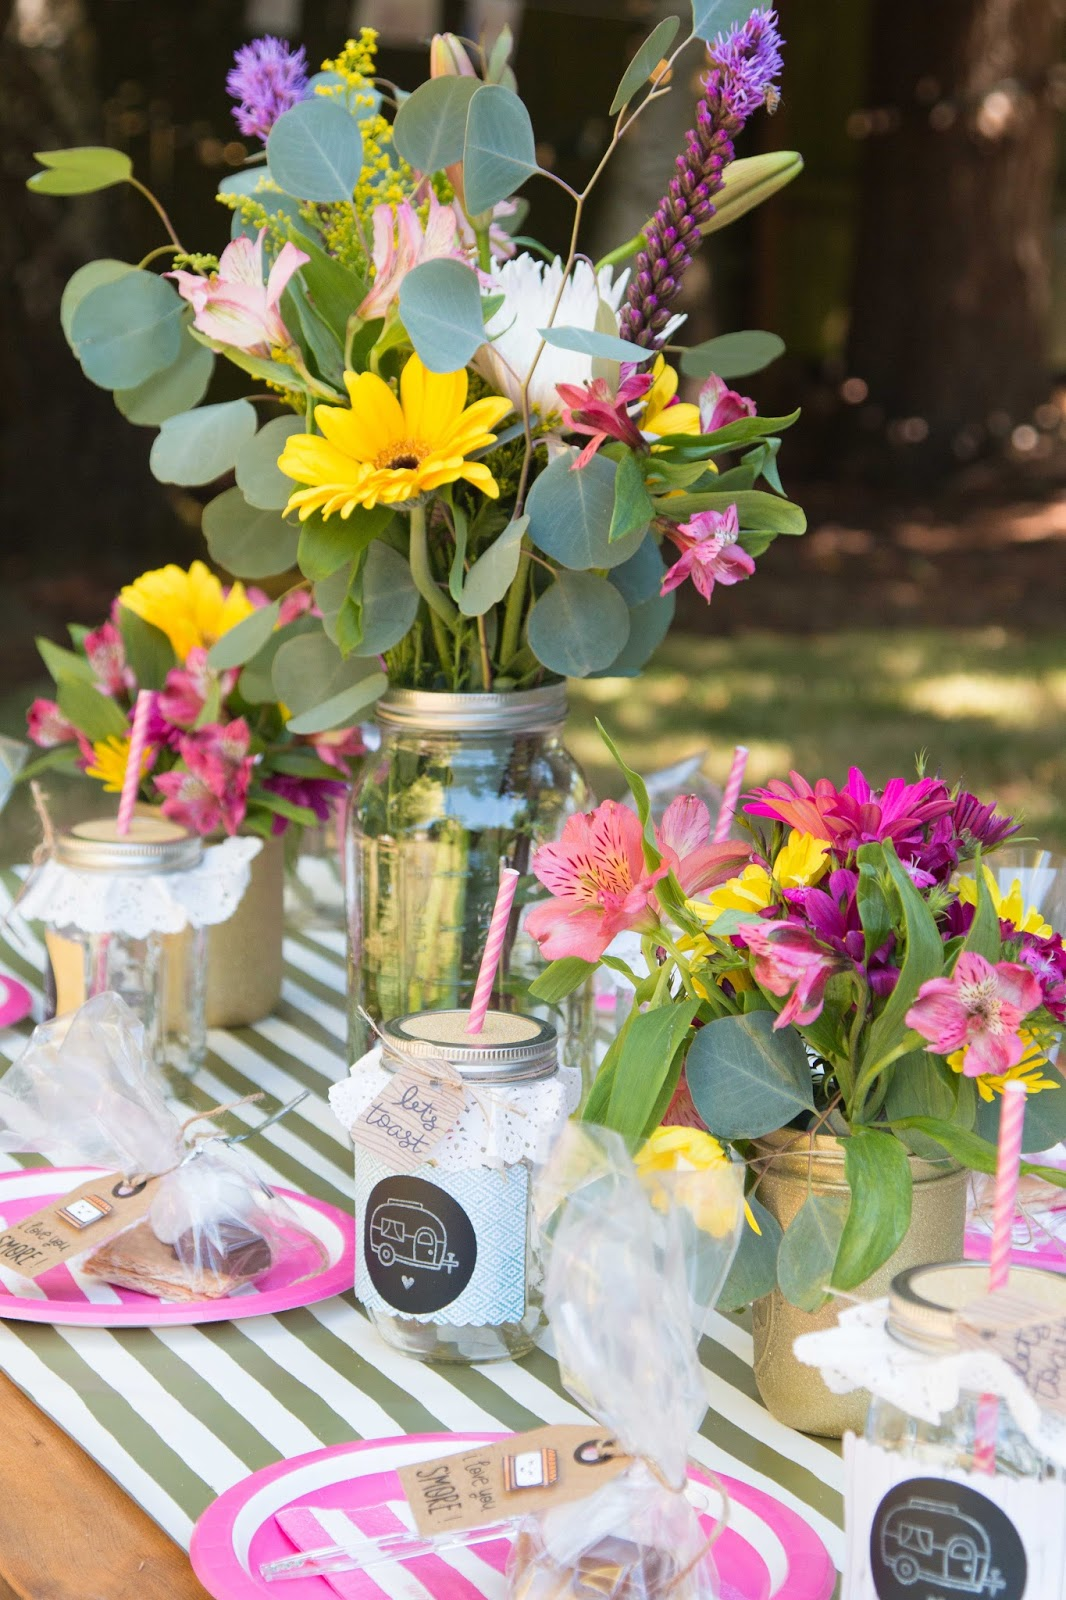 Glamping Birthday Party @craftsavvy @createoften #craftwarehouse #glamping #girl #birthday #party #diy